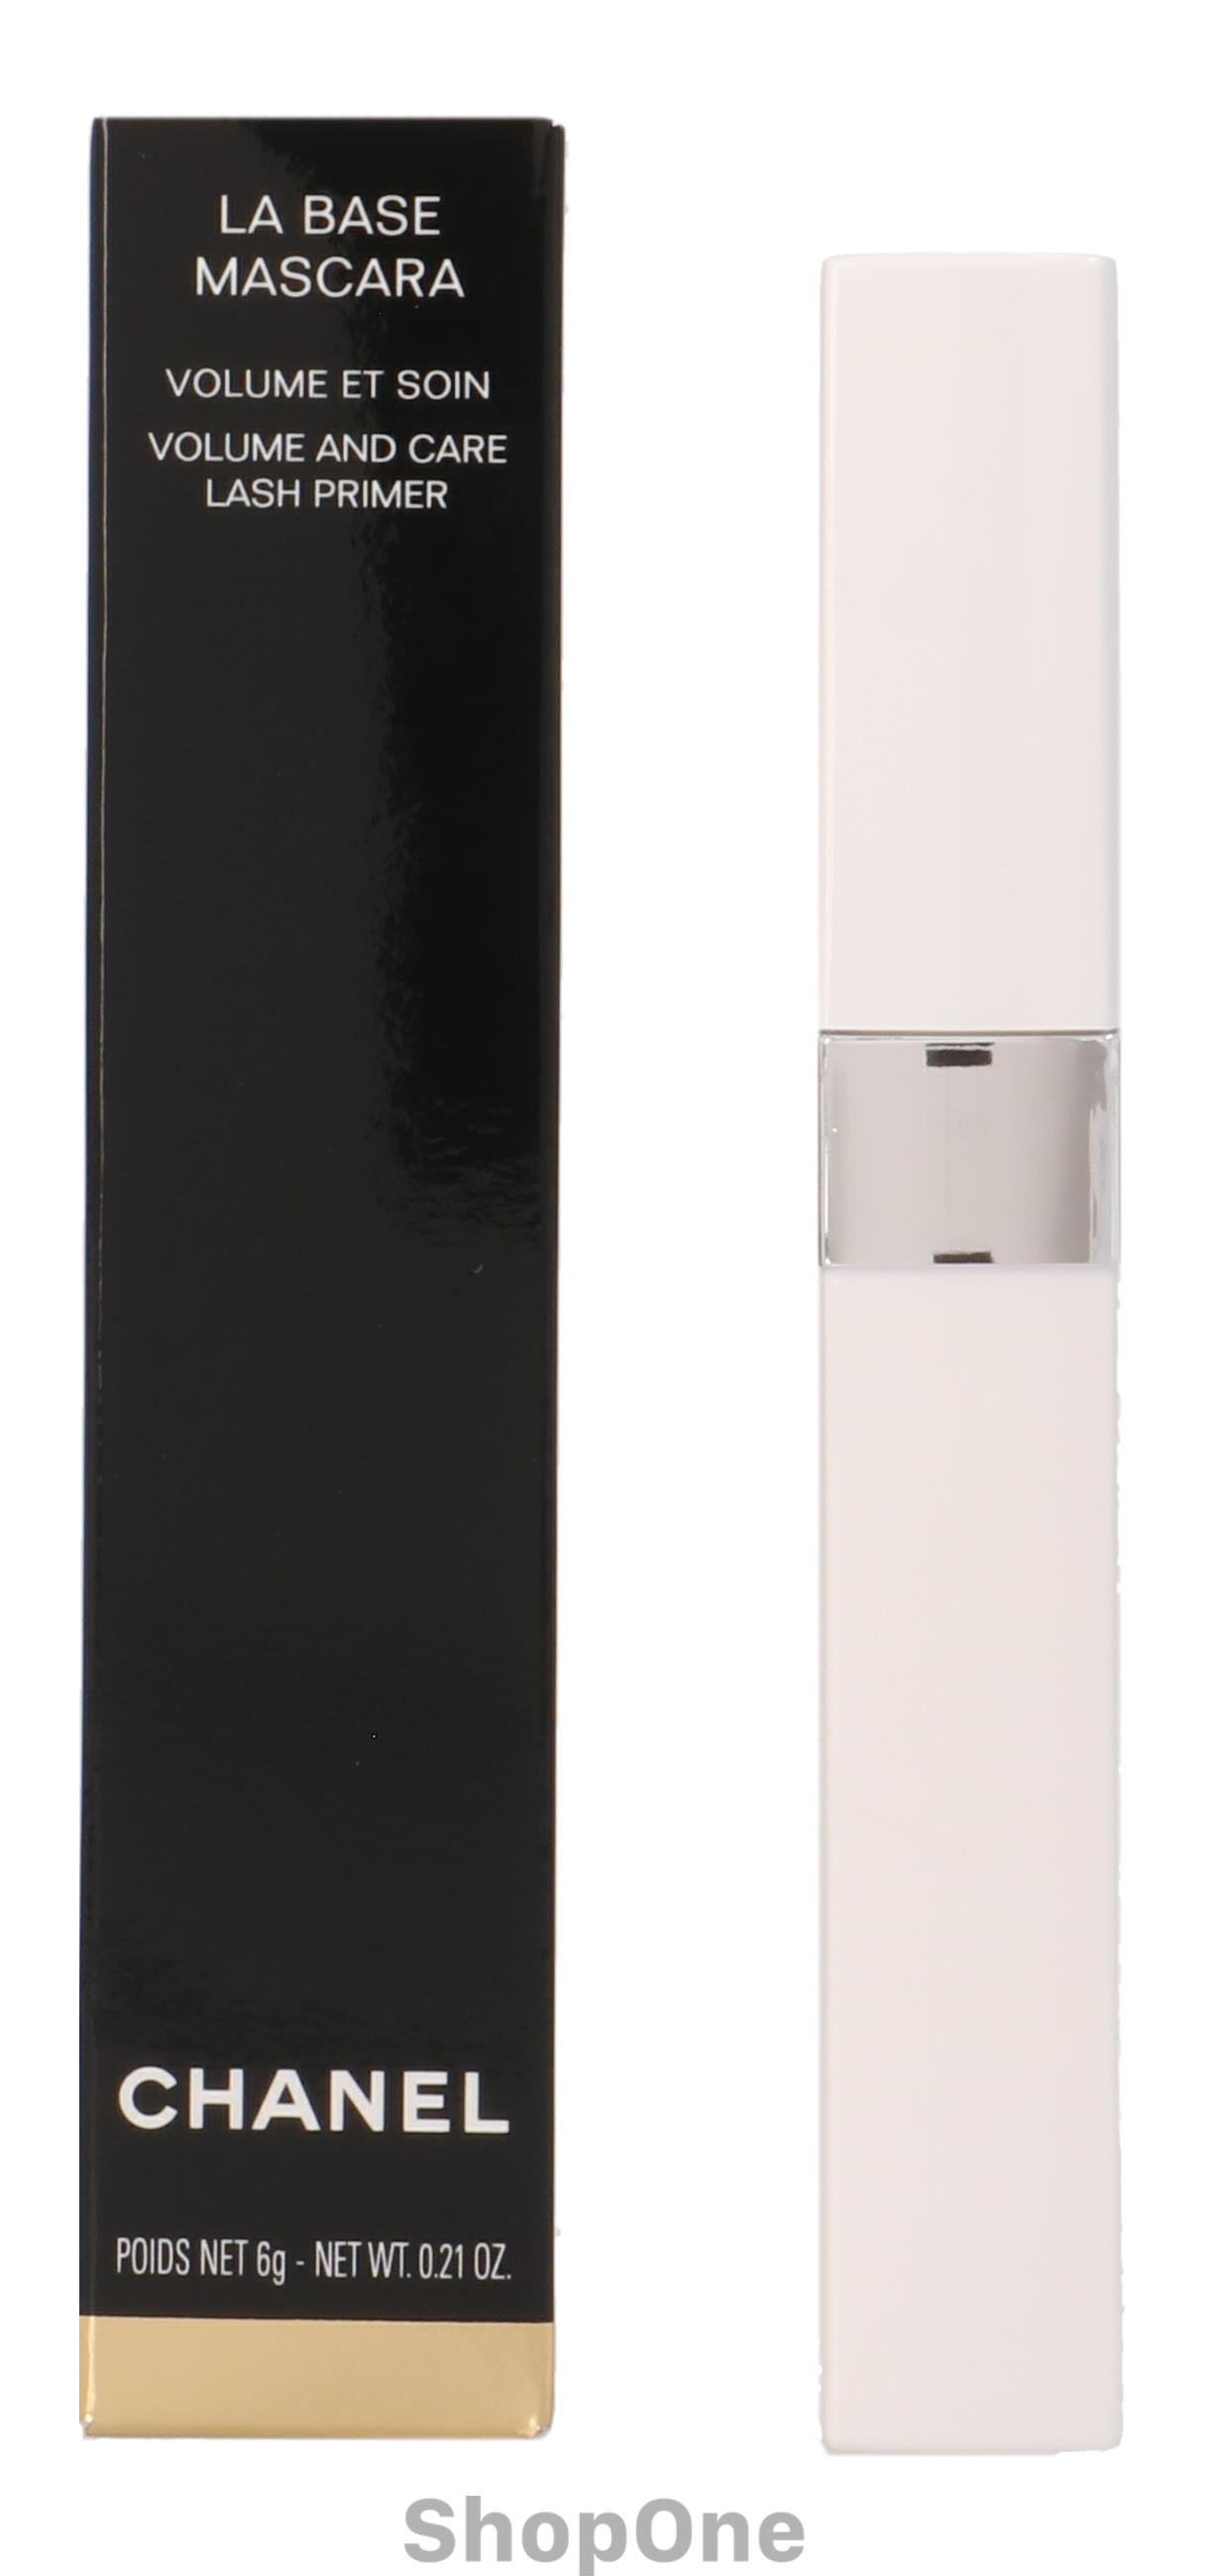 Image of   La Base Mascara Volume Care Lash Primer 6 gr fra Chanel